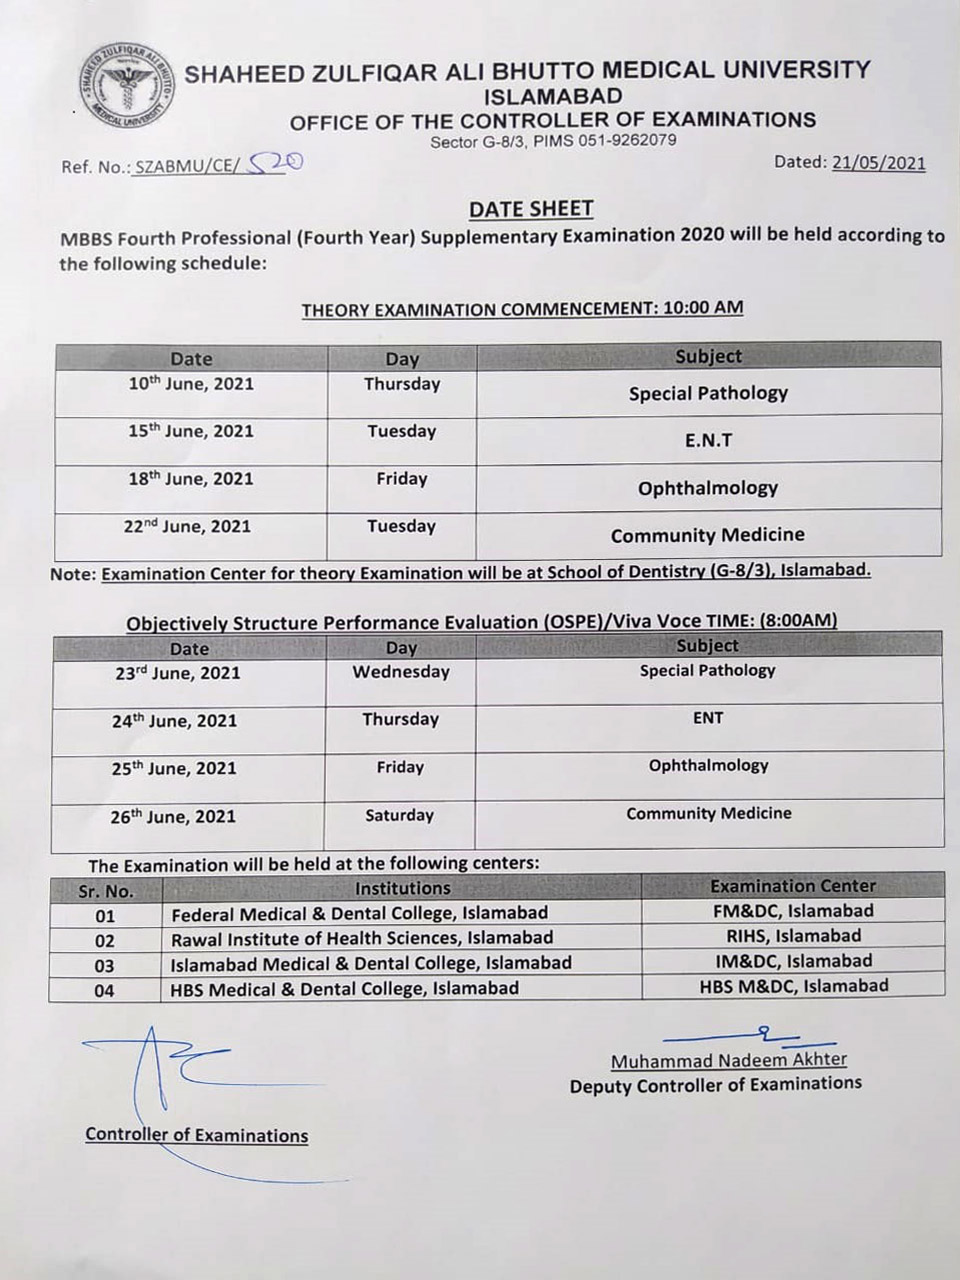 Date Sheet - MBBS 4th Year Supplementary Examination 2020